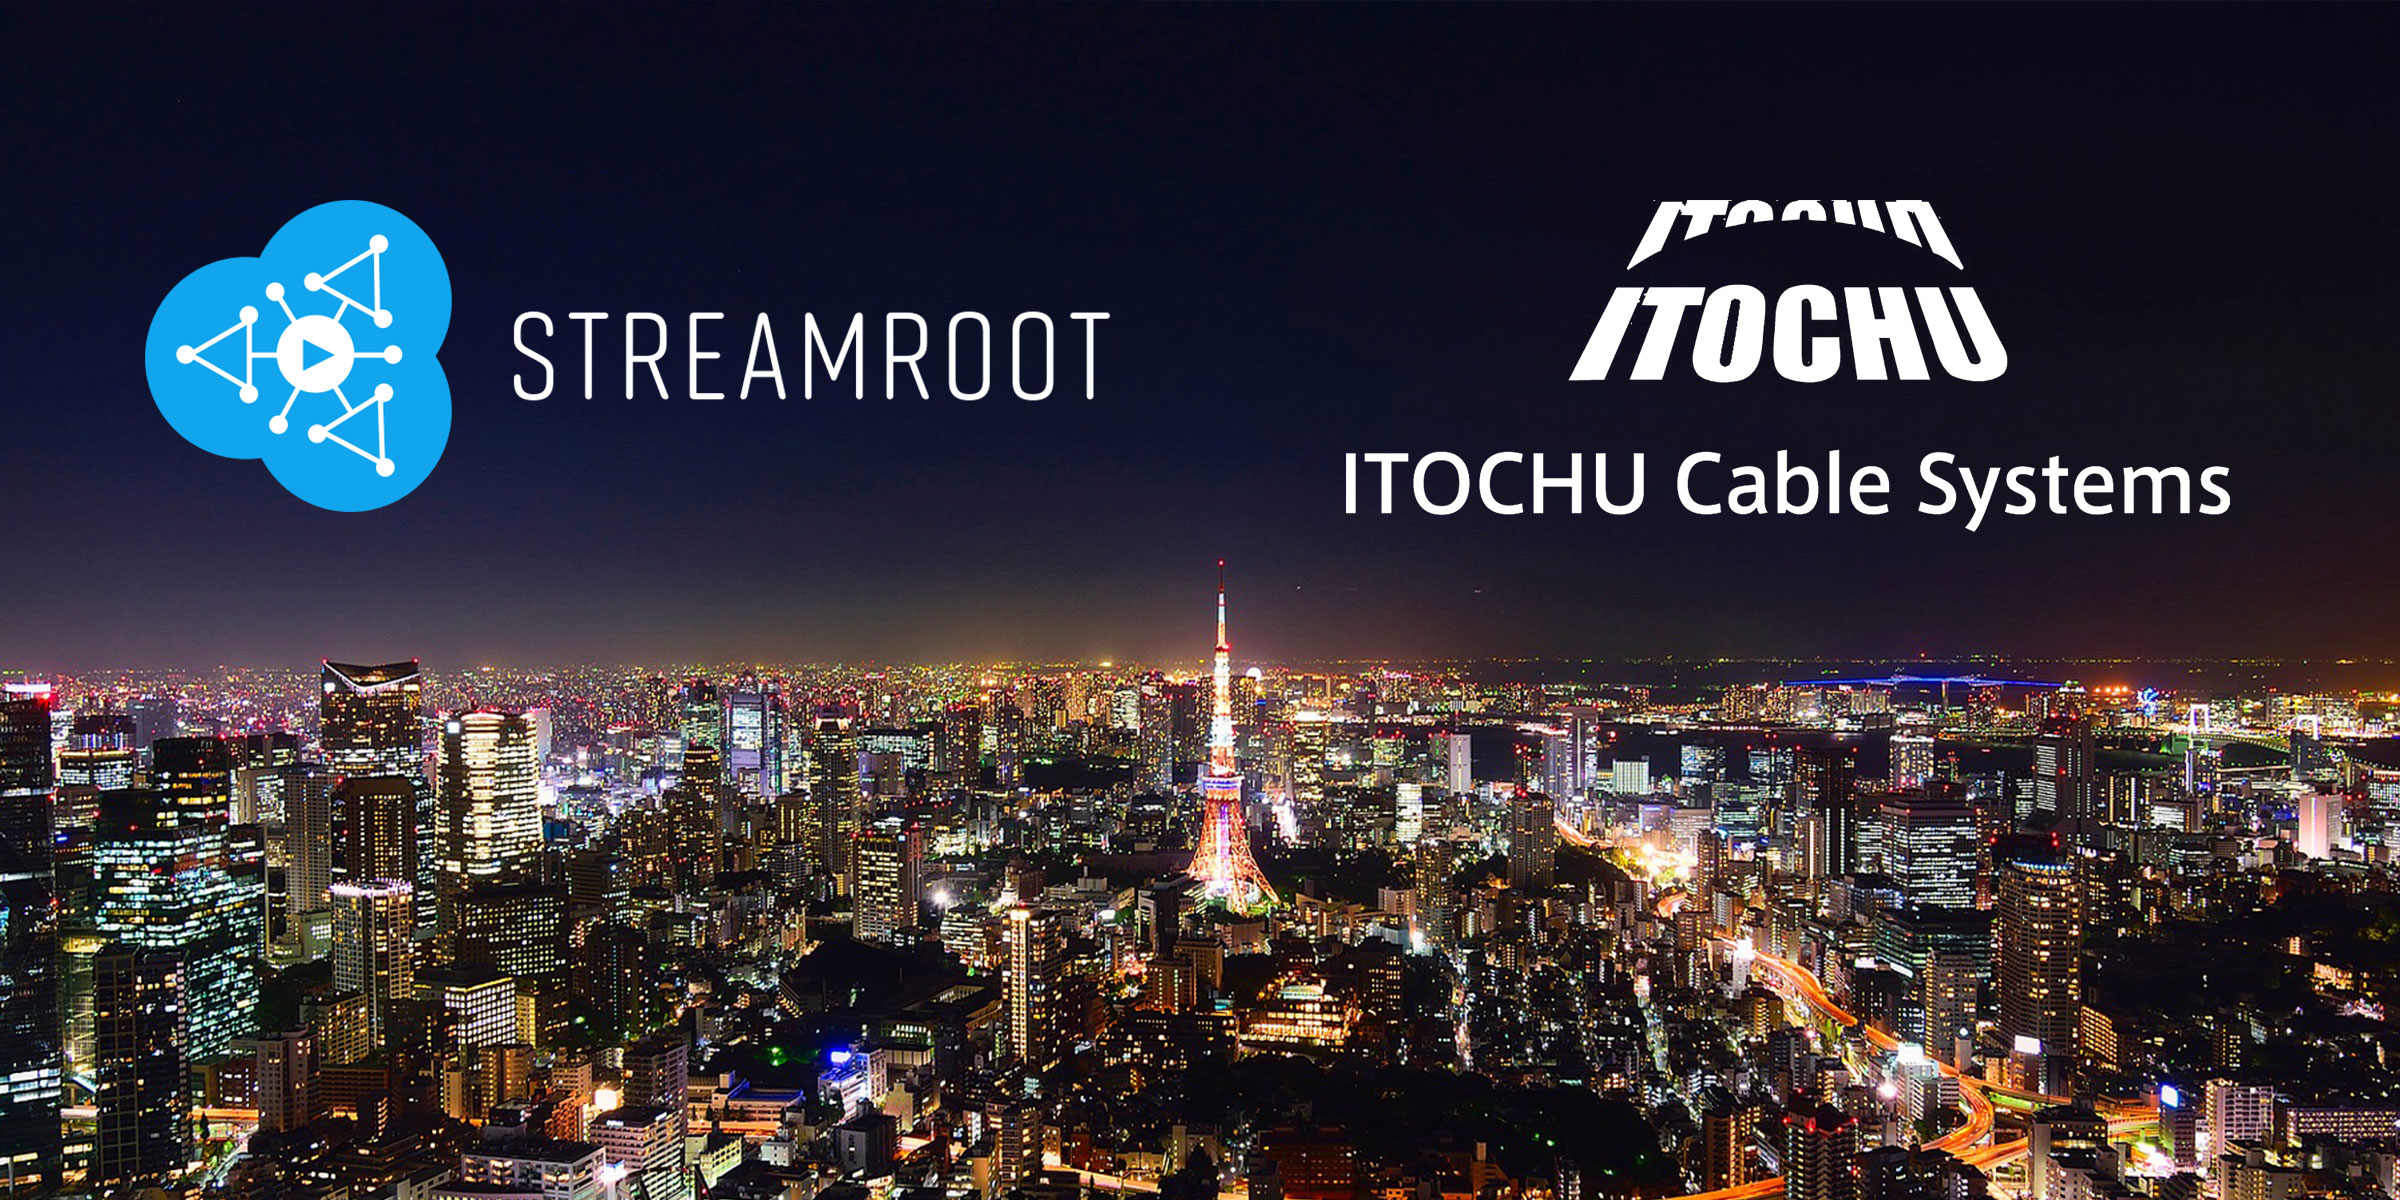 Streamroot and Itochu improve video delivery in Japan